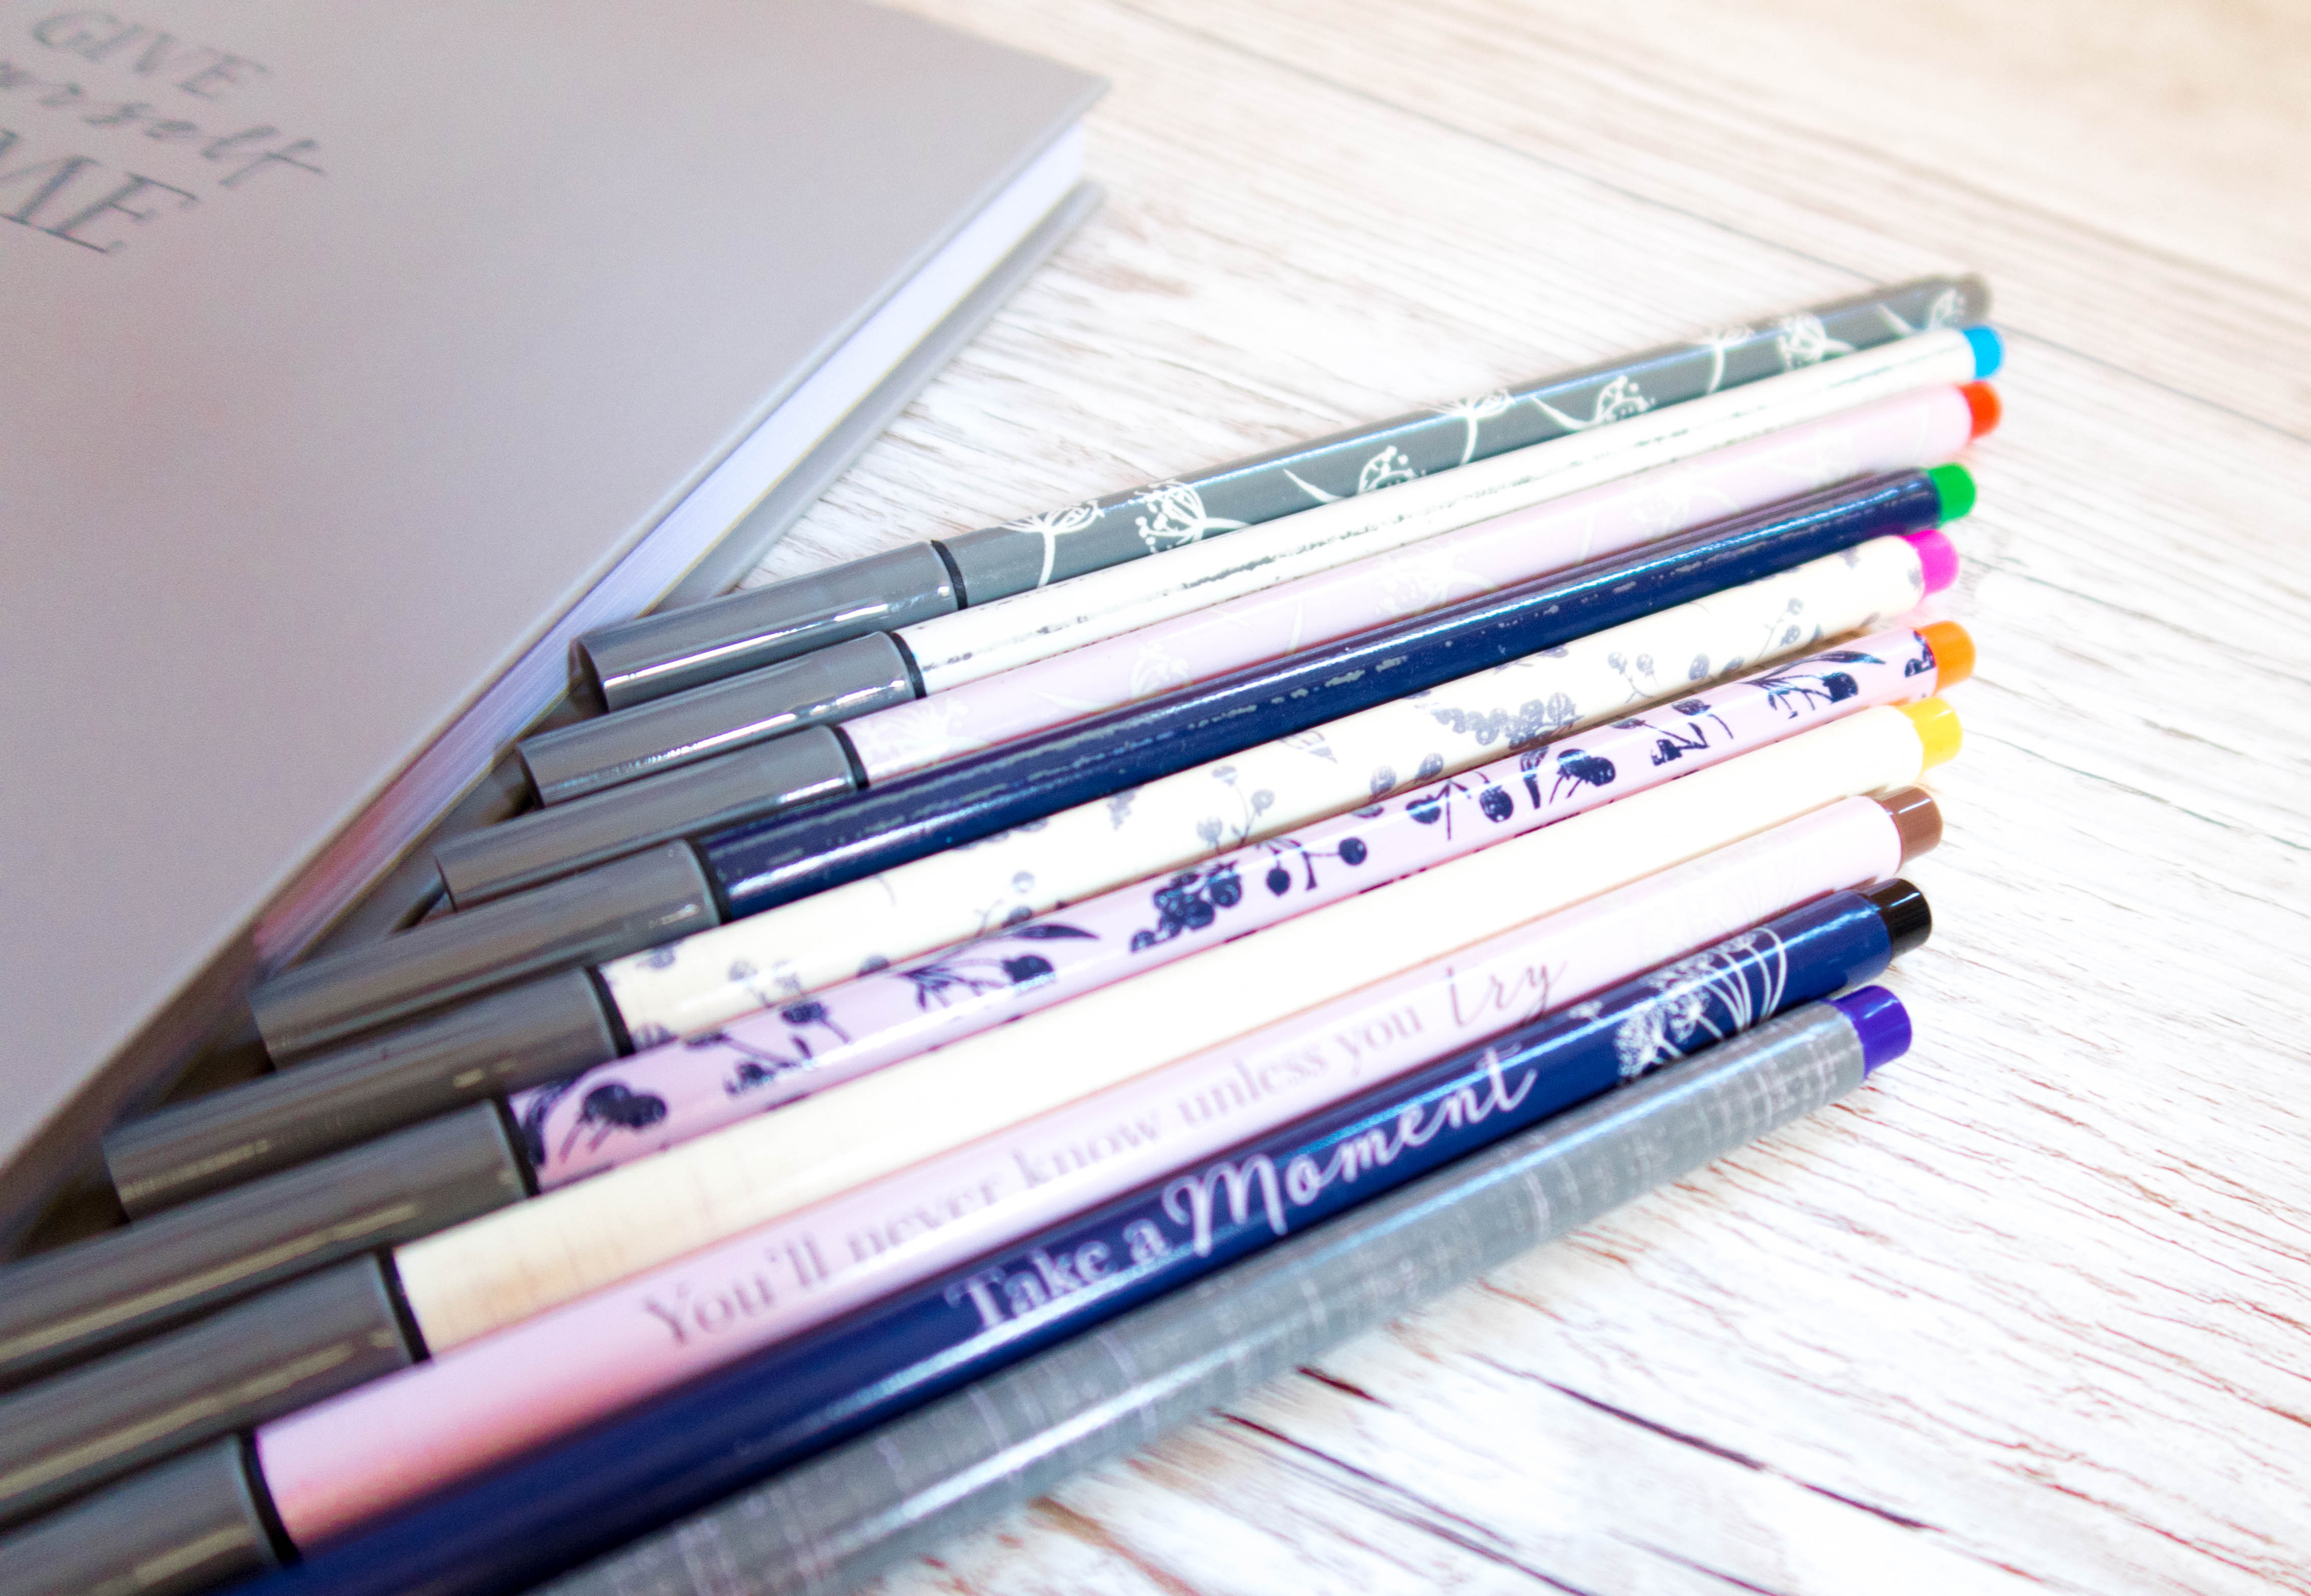 Mindful pens with messages on